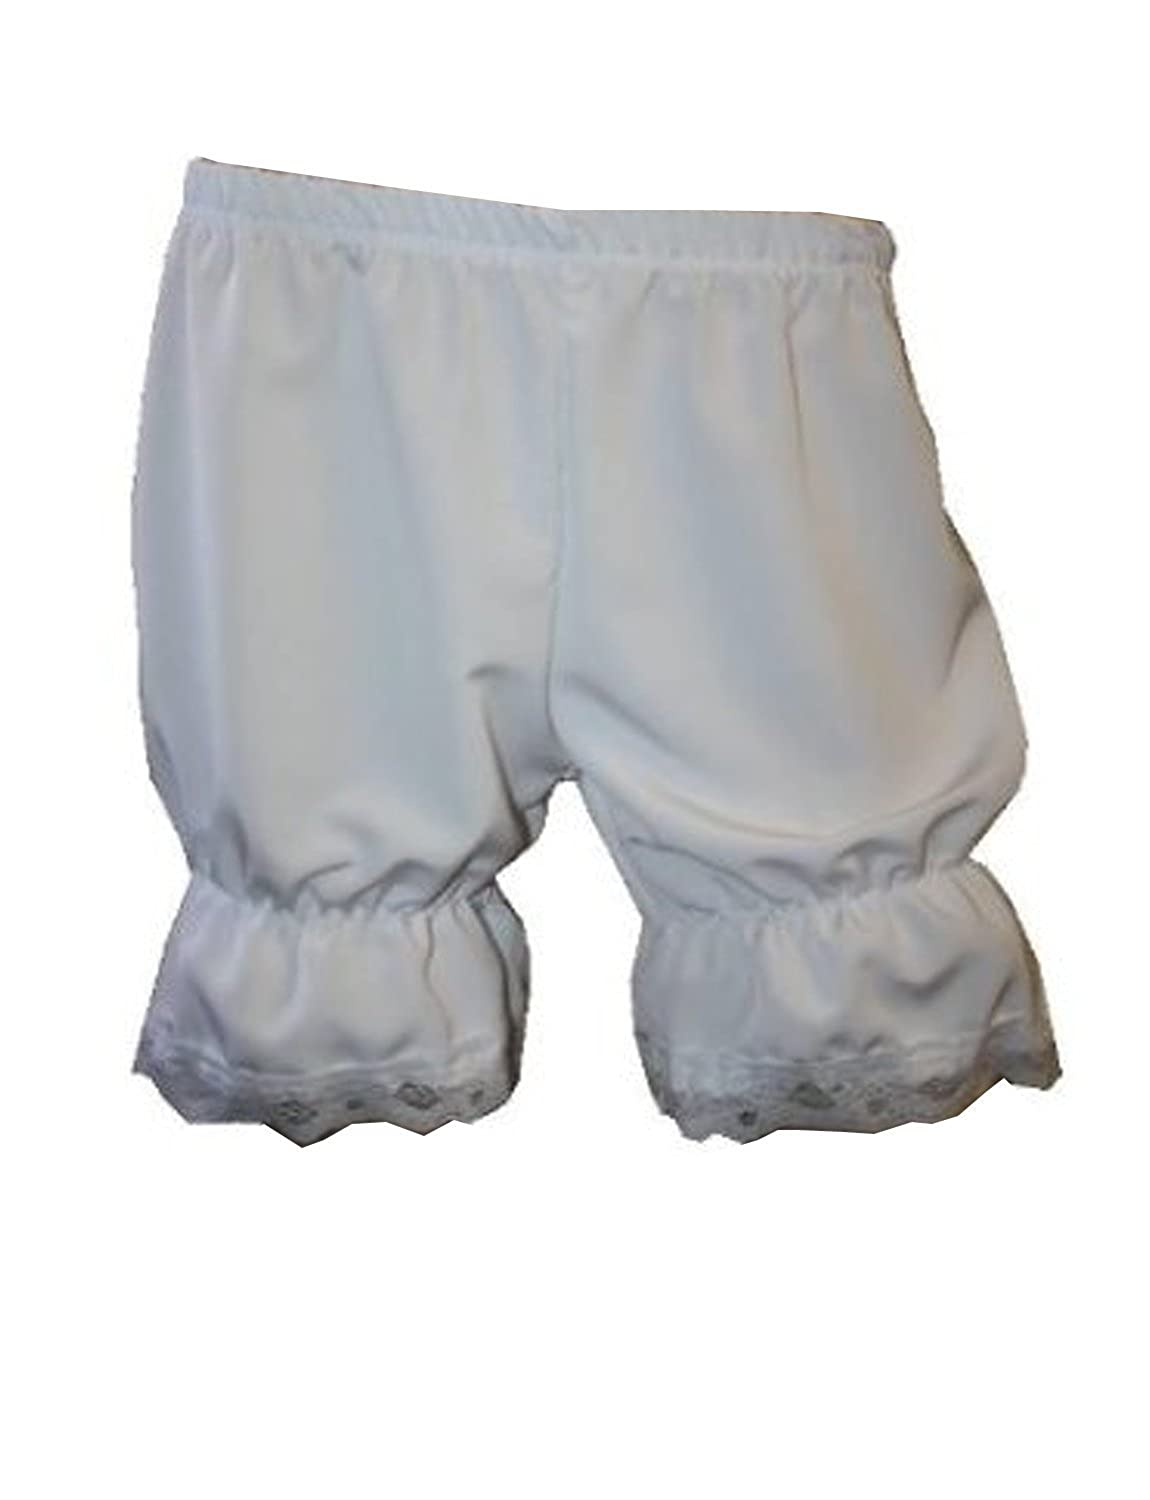 Women's Short Fancy Lace Trimmed English Bloomers - DeluxeAdultCostumes.com